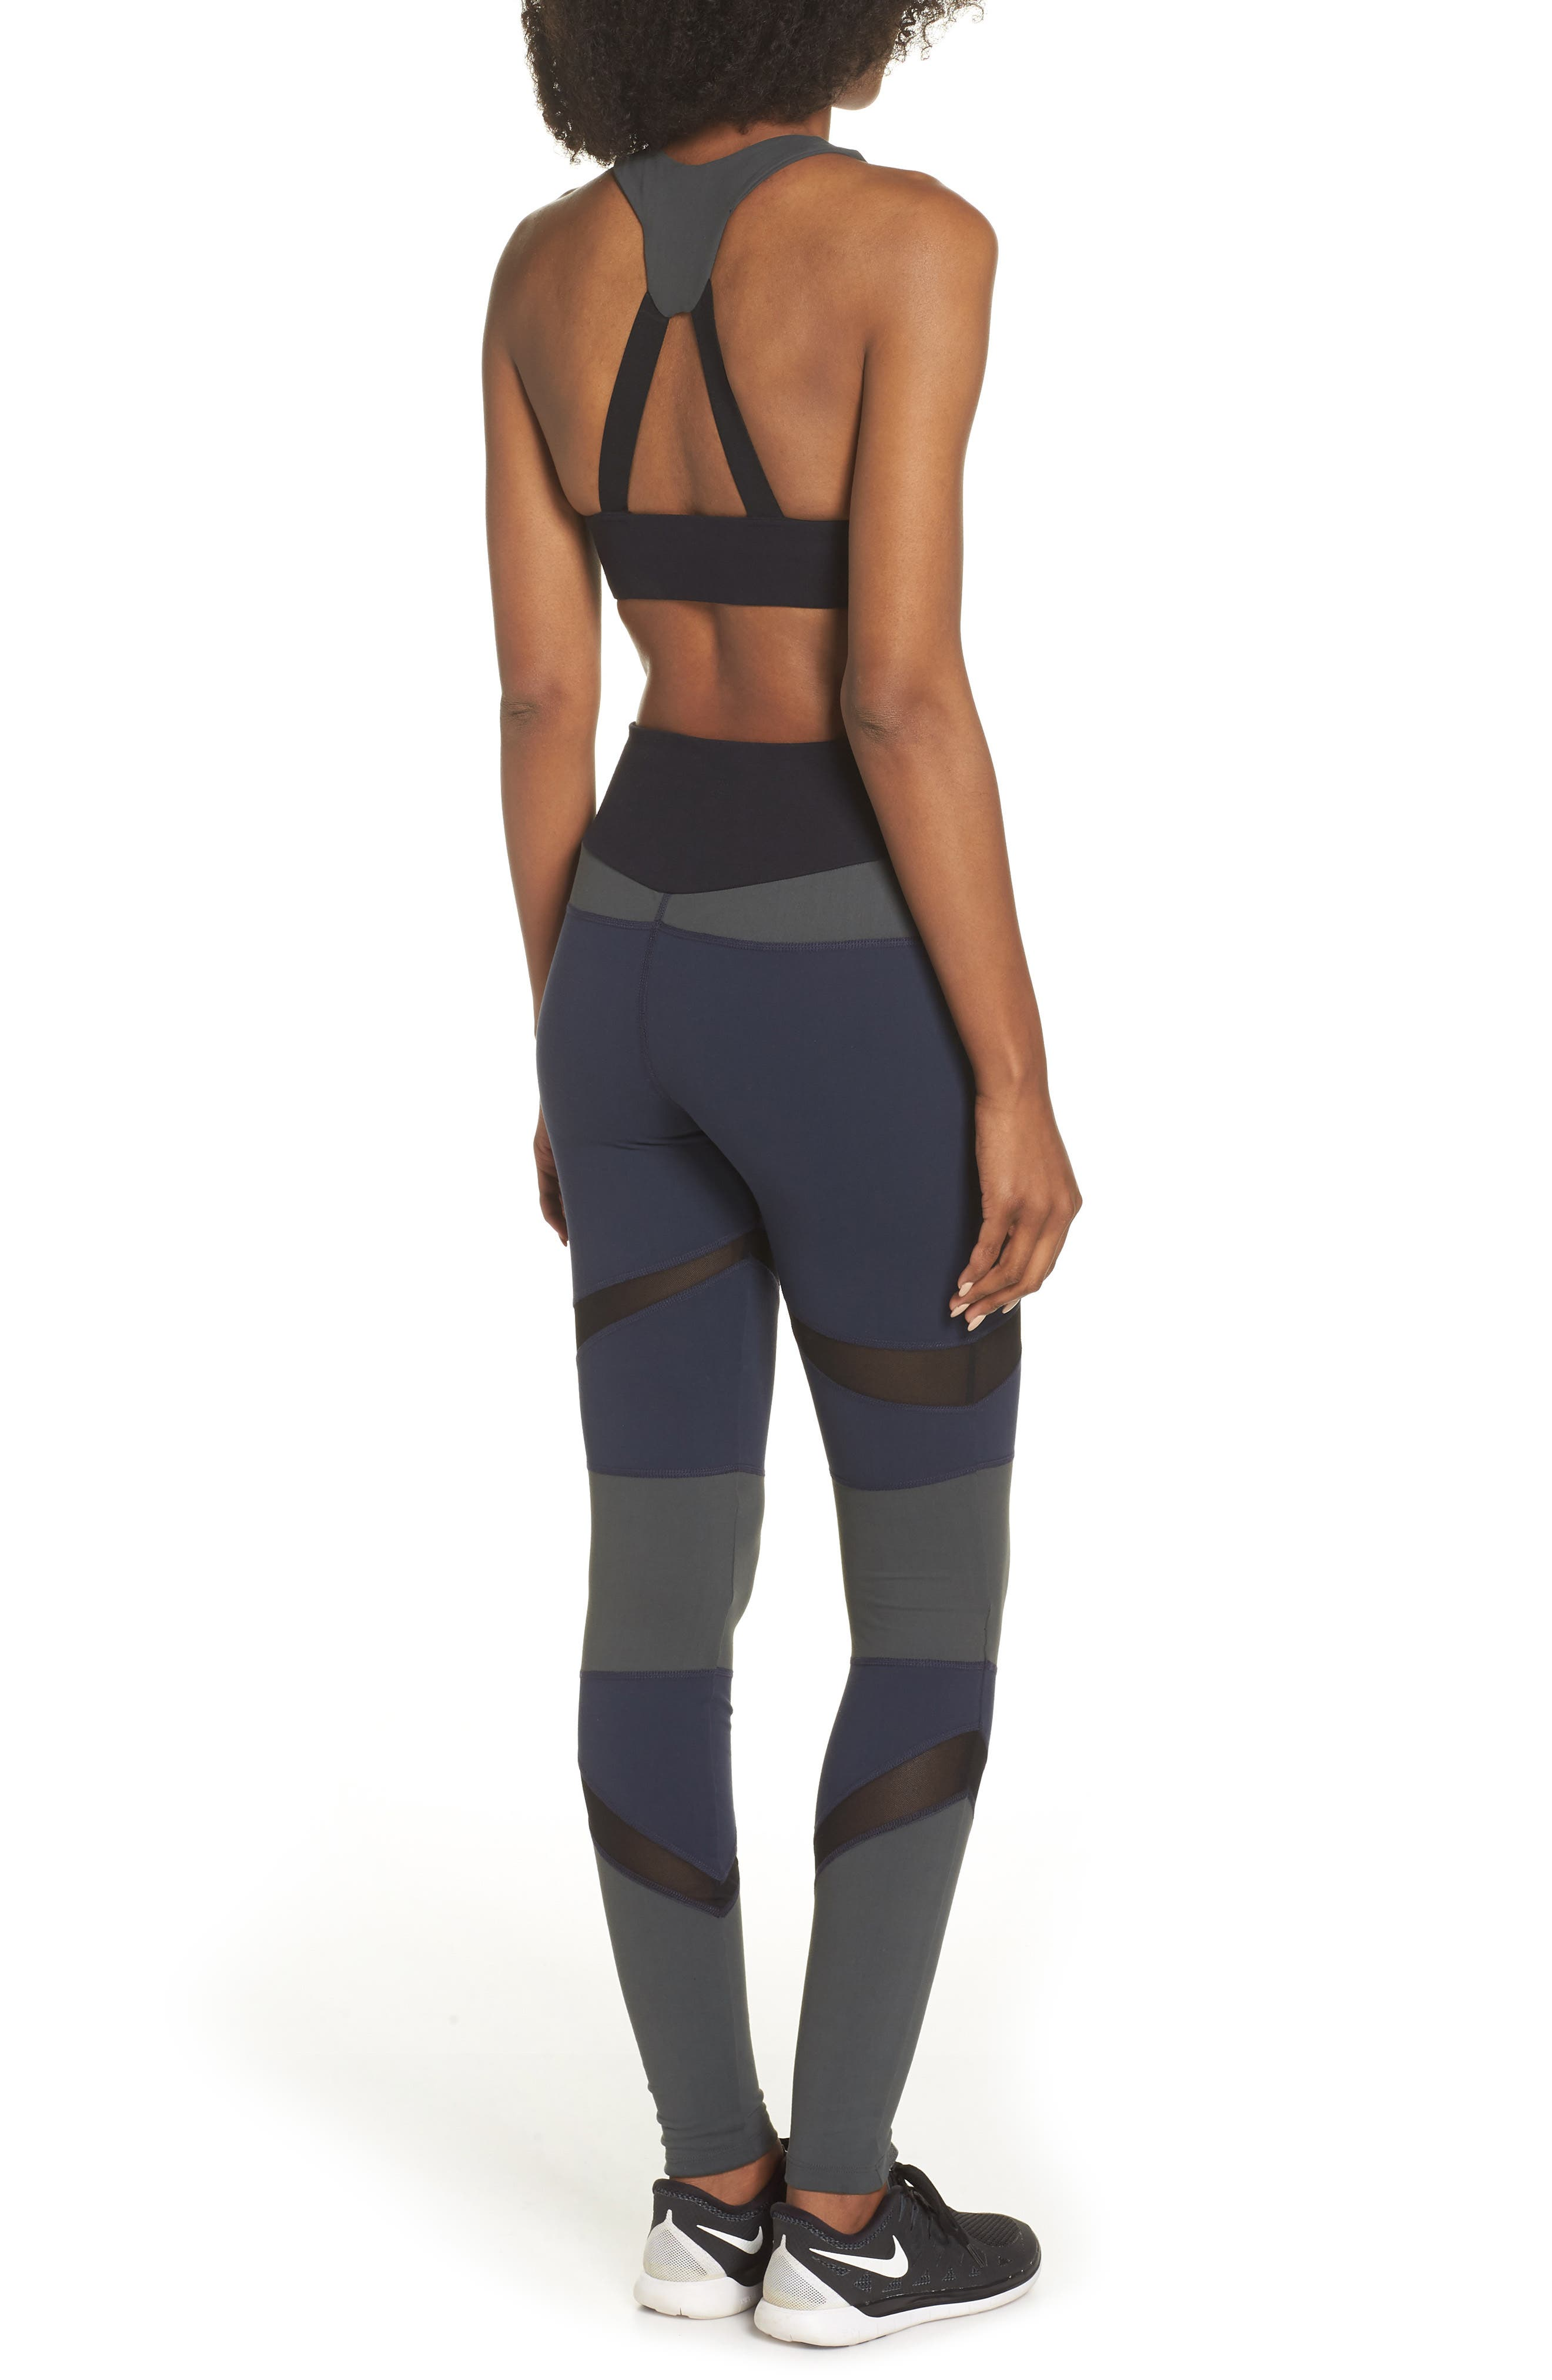 BoomBoom Athletica Brushed Tricolor Bra,                             Alternate thumbnail 9, color,                             Navy/ Black/ Green